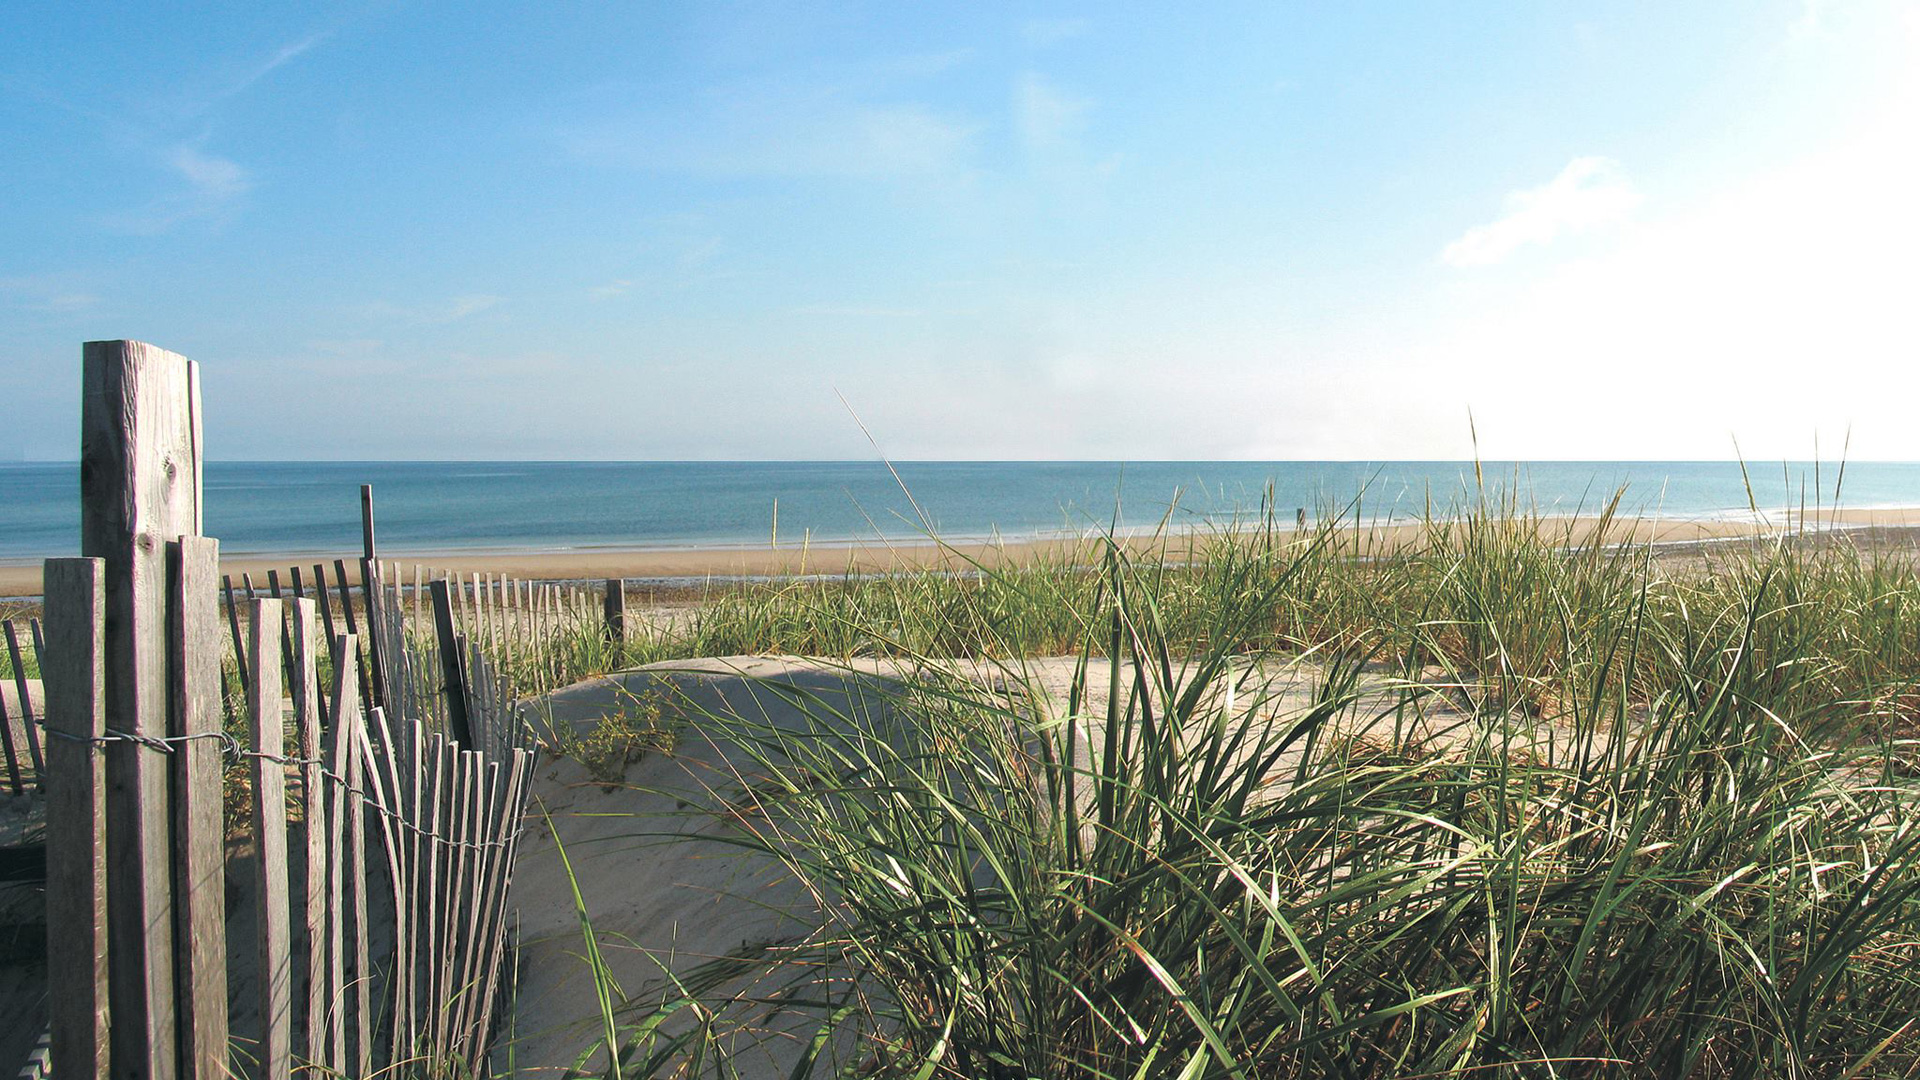 Tidewater outer banks edition coastal angler the for Outer banks fly fishing